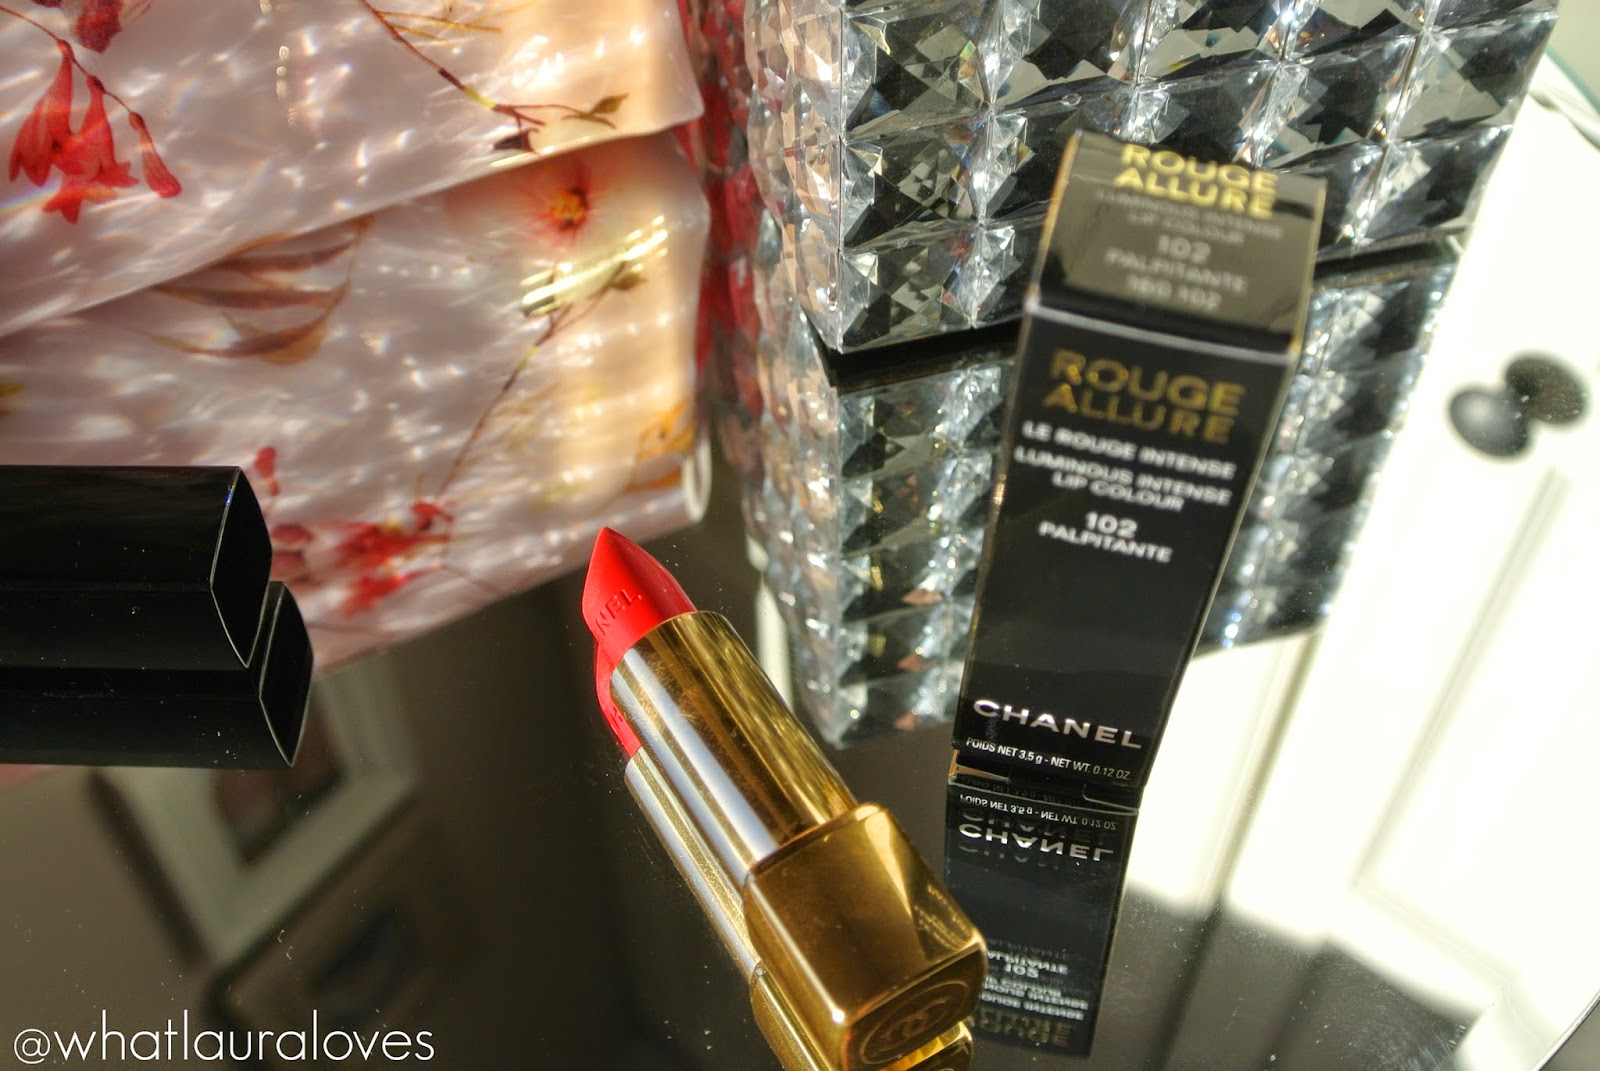 Chanel Rouge Allure Lipstick in Palpitante Review and Swatches